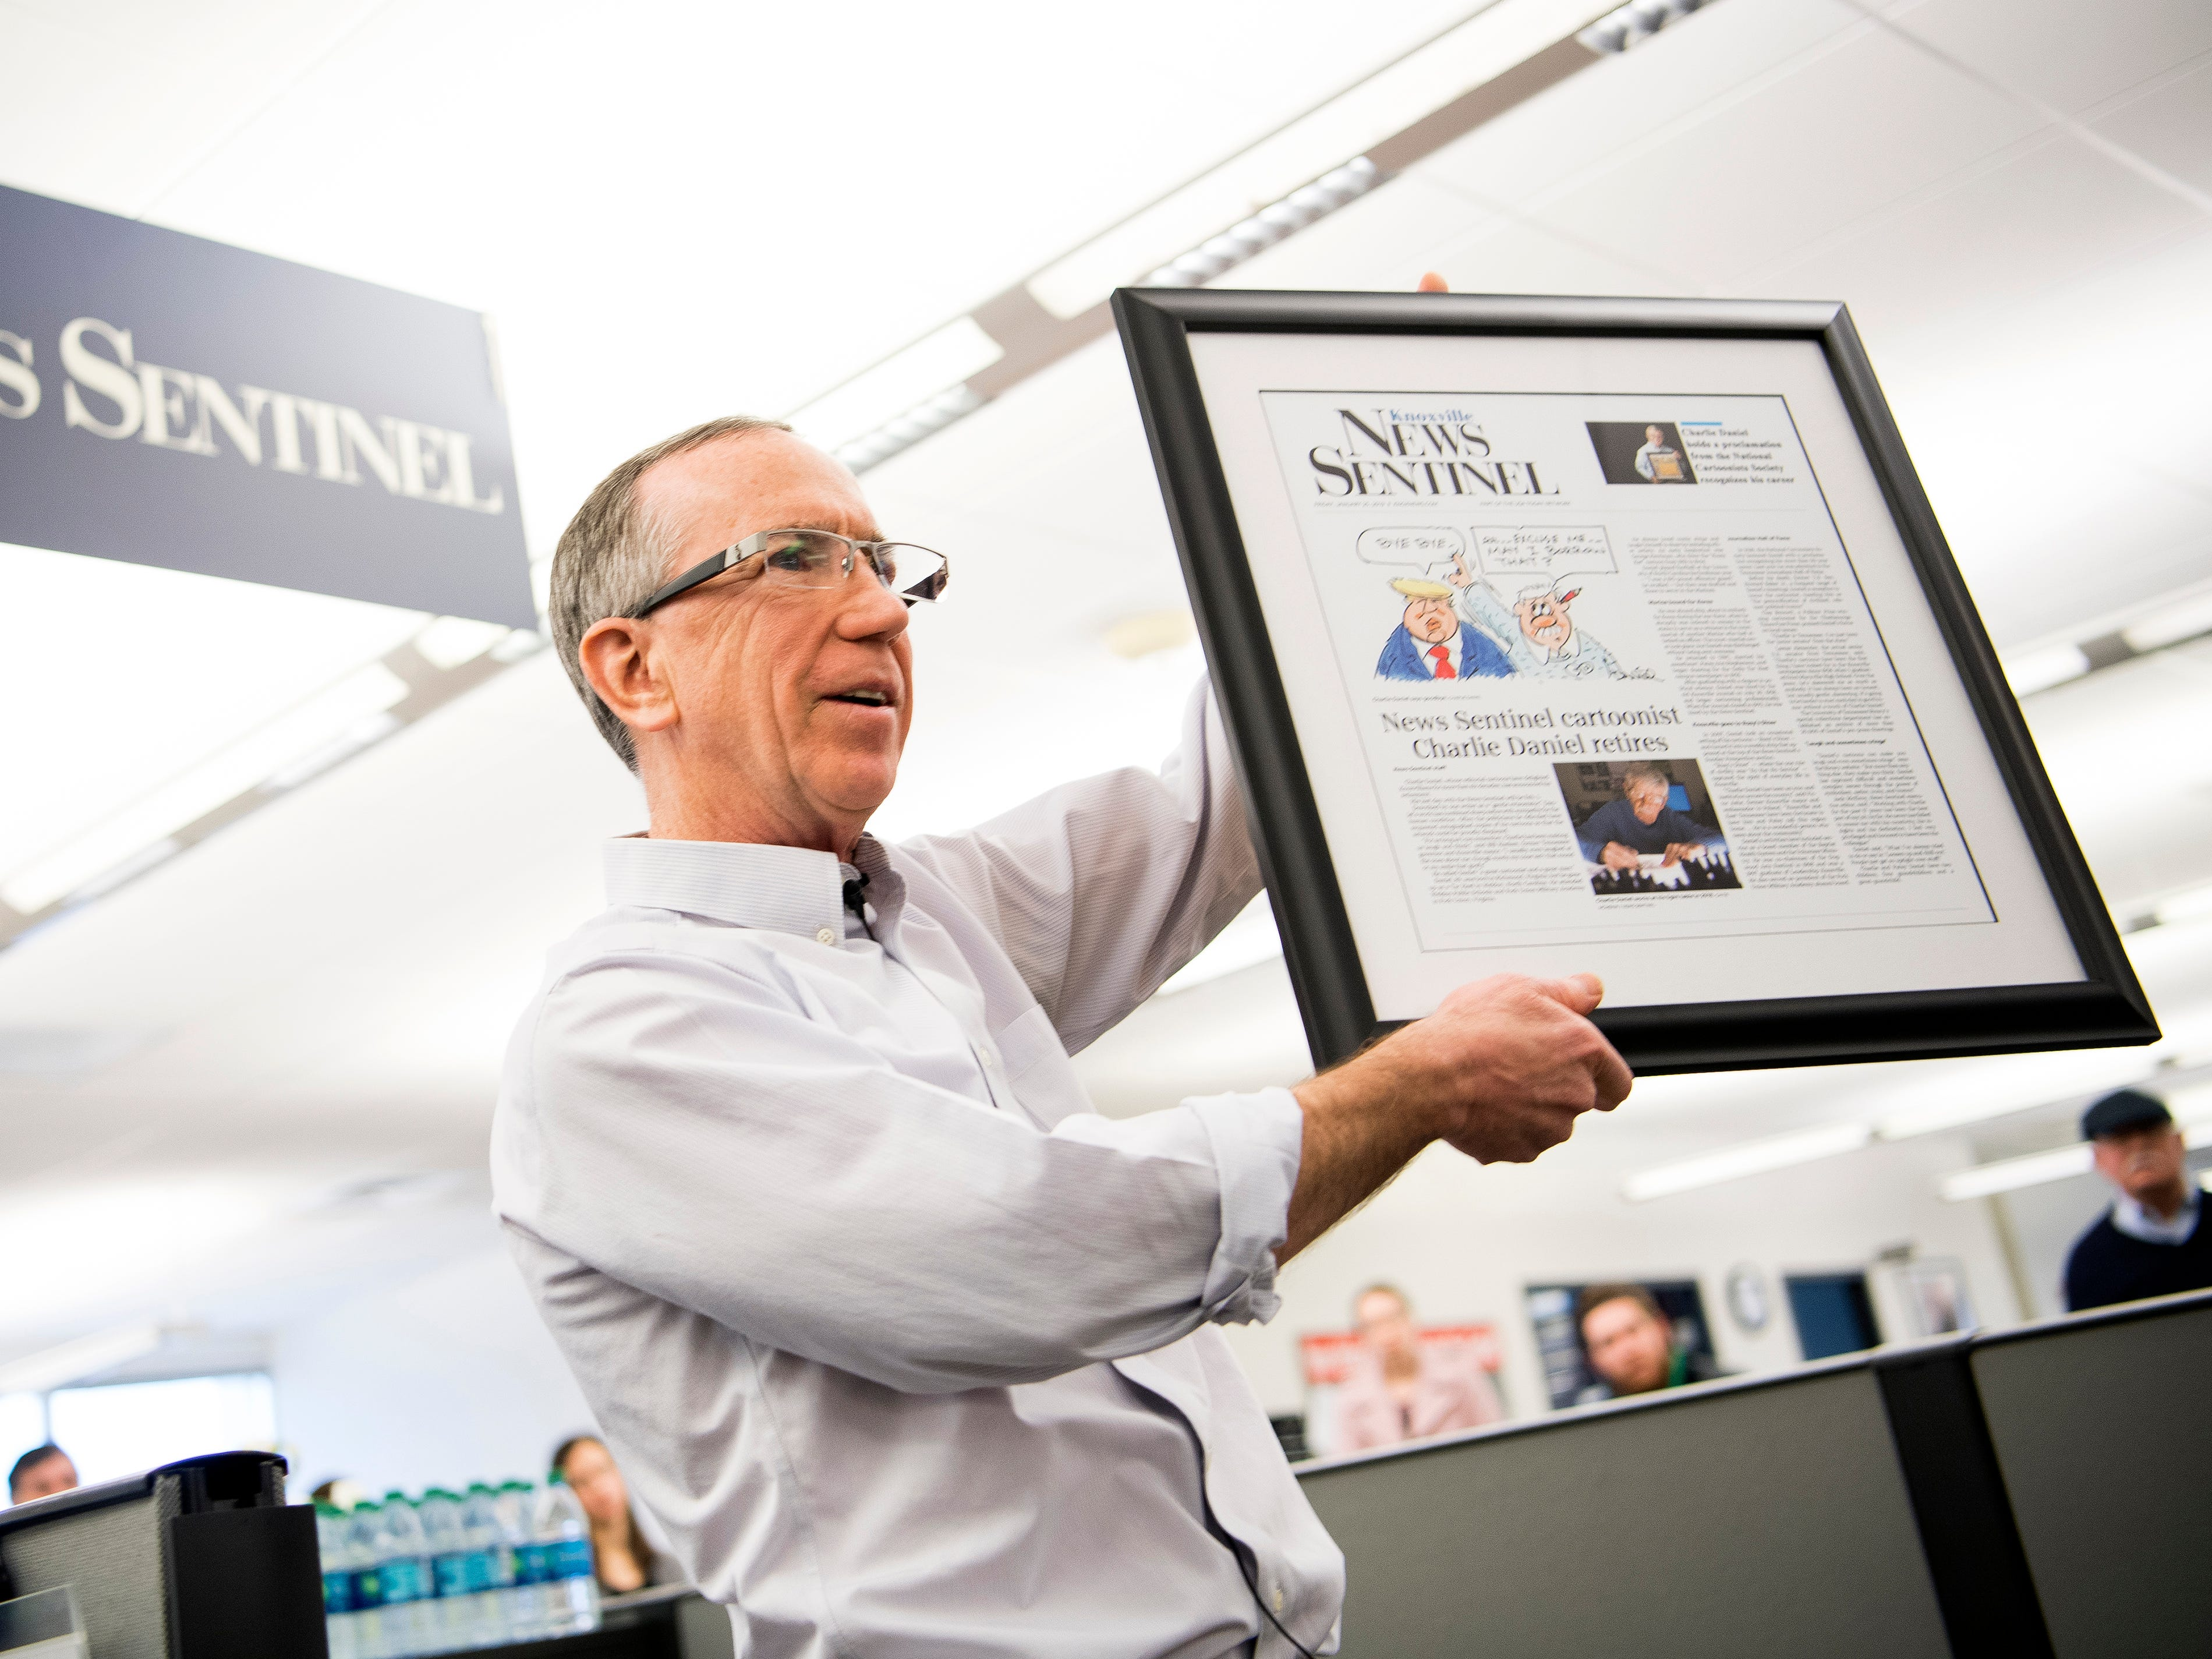 News Sentinel Executive Editor Jack McElroy speaks during a celebration for the retirements of executive editor Jack McElroy and cartoonist Charlie Daniel in the News Sentinel newsroom on Friday, February 1, 2019.